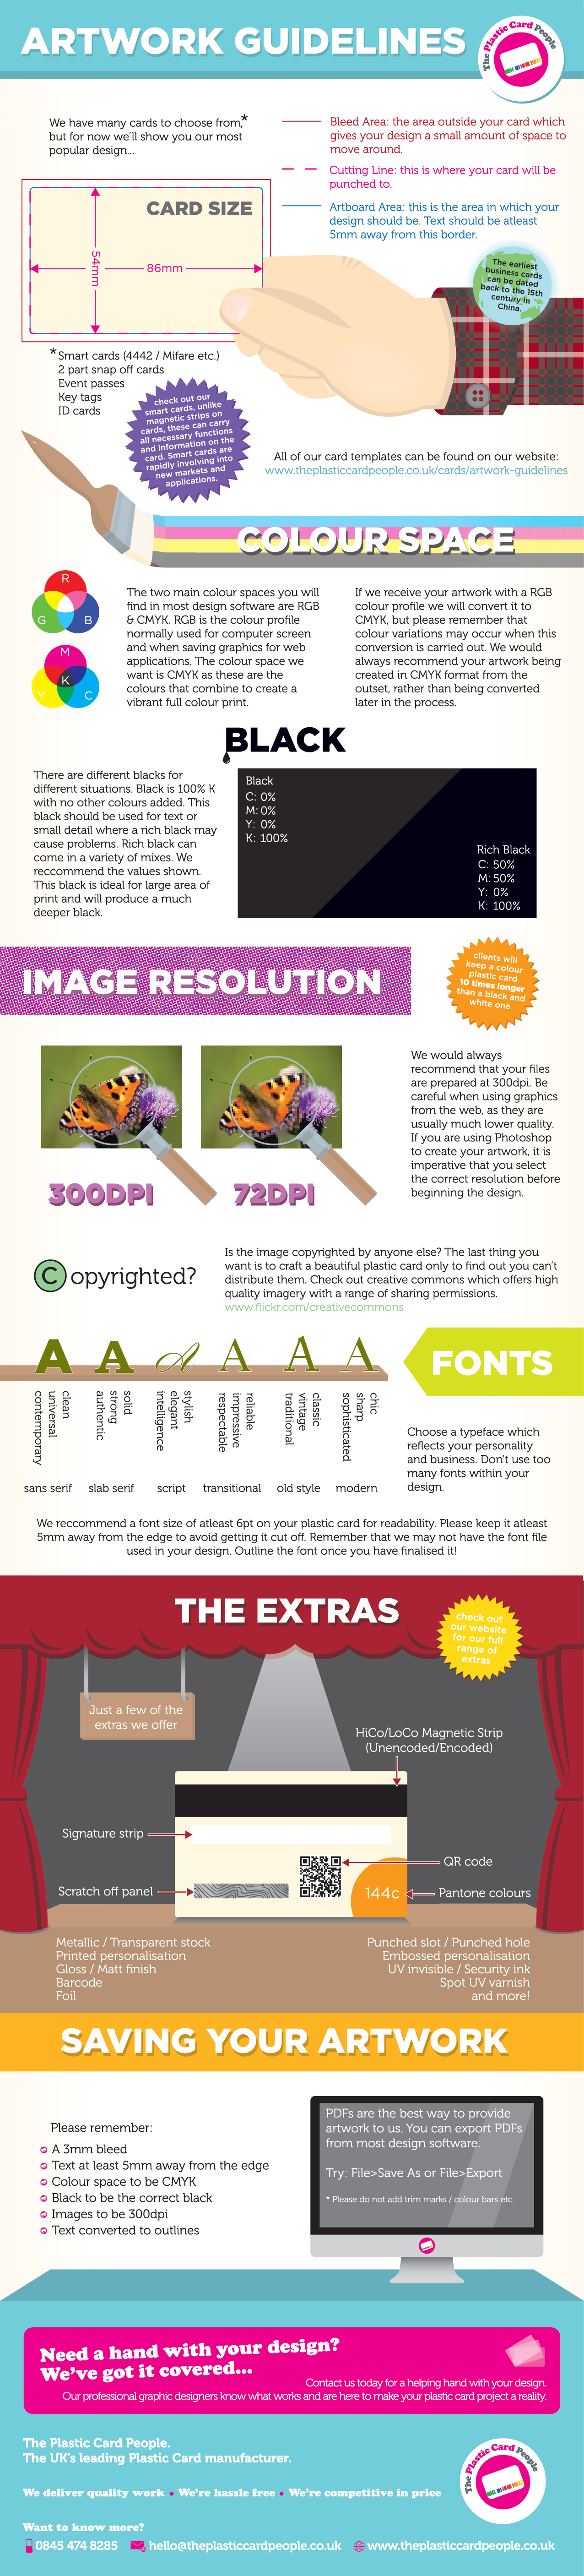 artwork guidelines plastic card printing infographic for designing